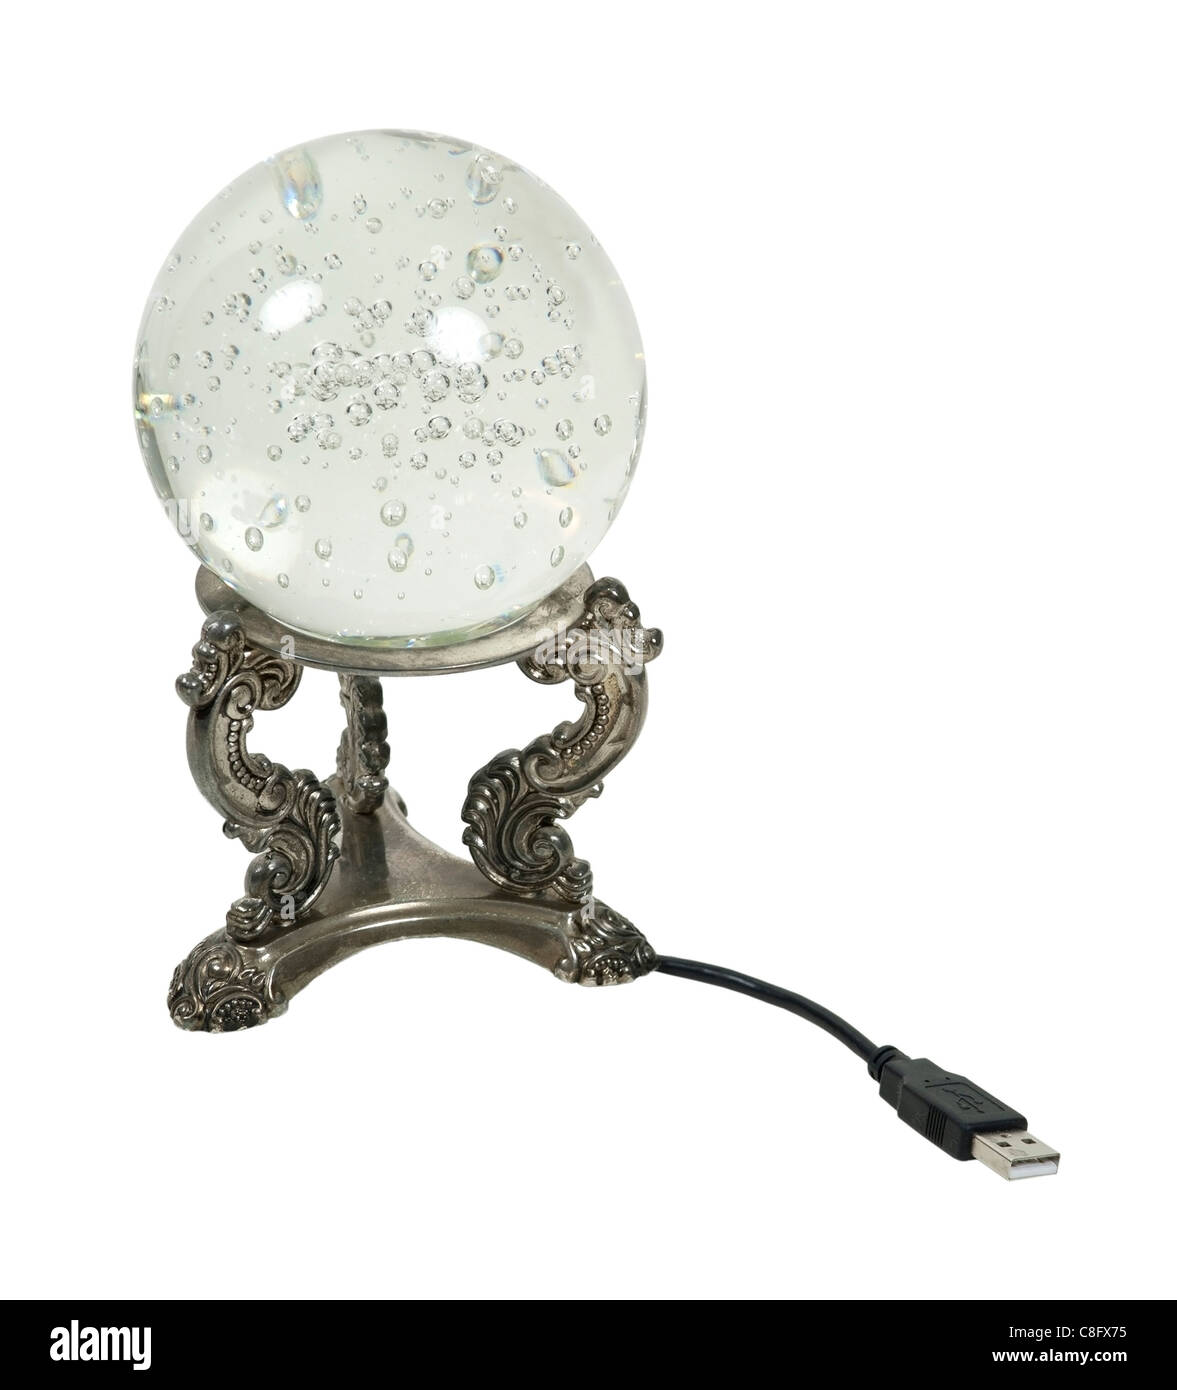 USB powered crystal ball for an updated view into the future - path included - Stock Image